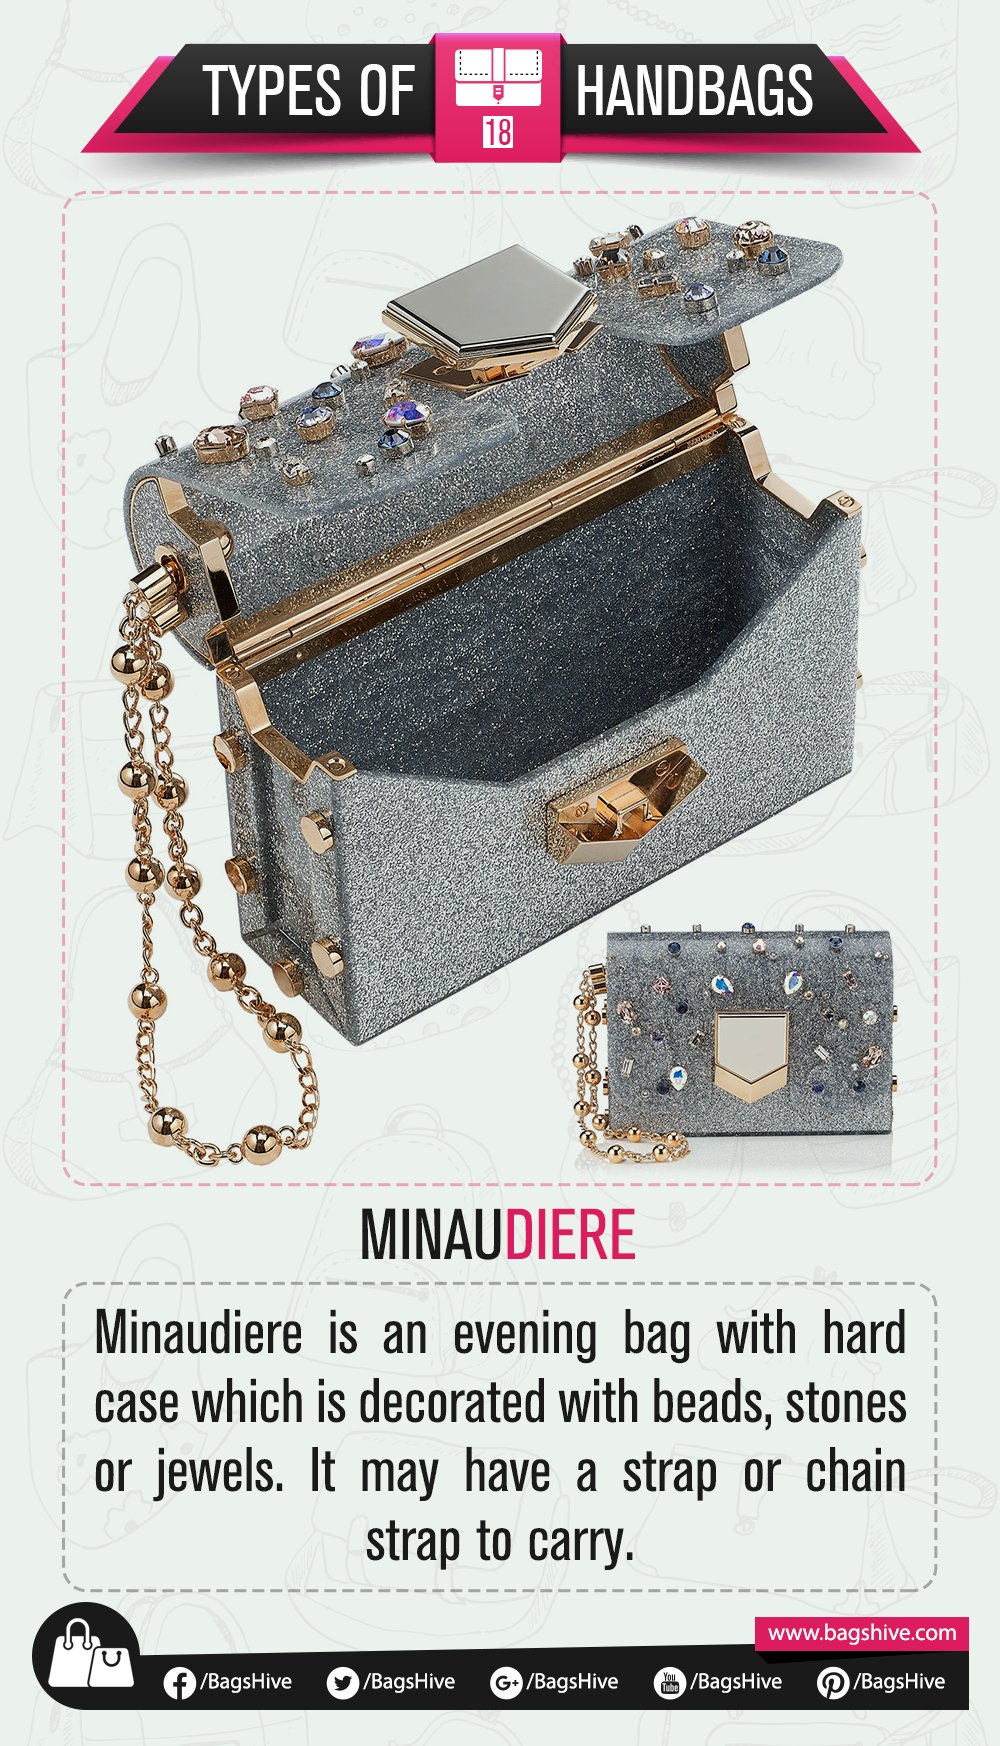 Types of Handbags | Minaudiere | 18  Minaudiere is an evening bag with hard case which is decorated with beads, stones or jewels. It may have a strap or chain strap to carry.   #BagsHive #Minaudiere #MinaudiereBag